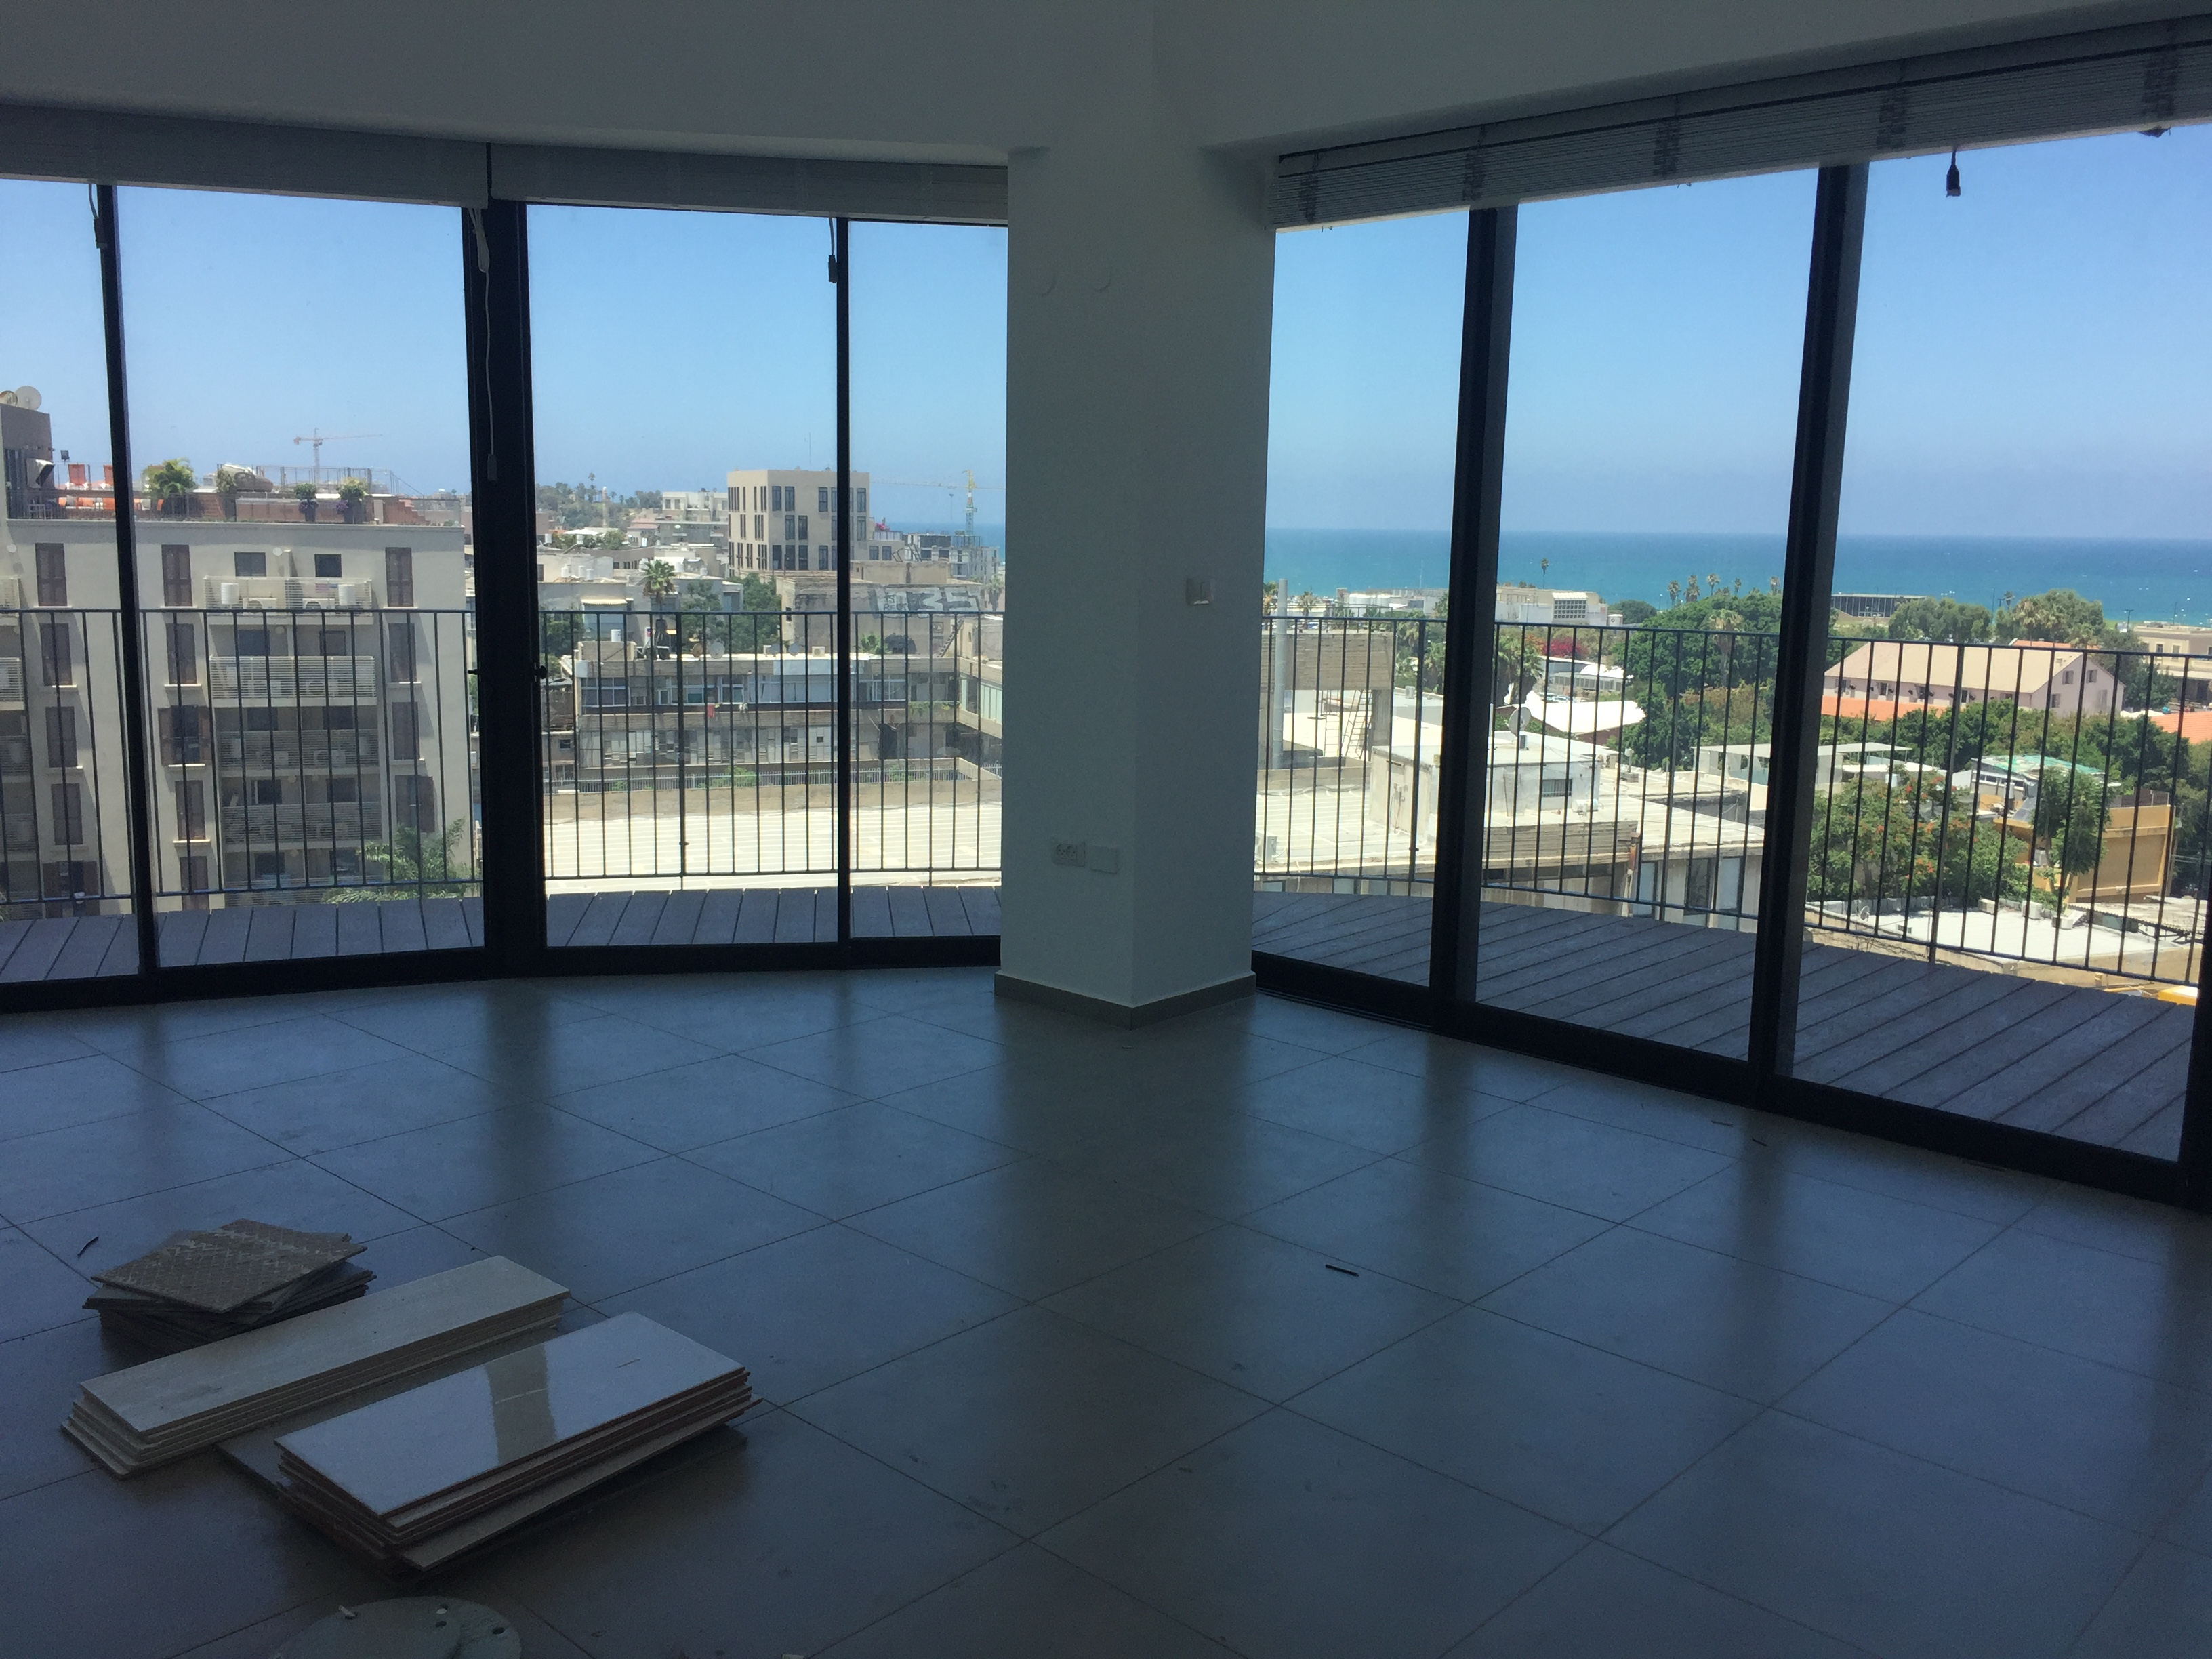 2BR Apartment for Sale with Sea Views in Elifelet 26 - Tel Aviv Real ...